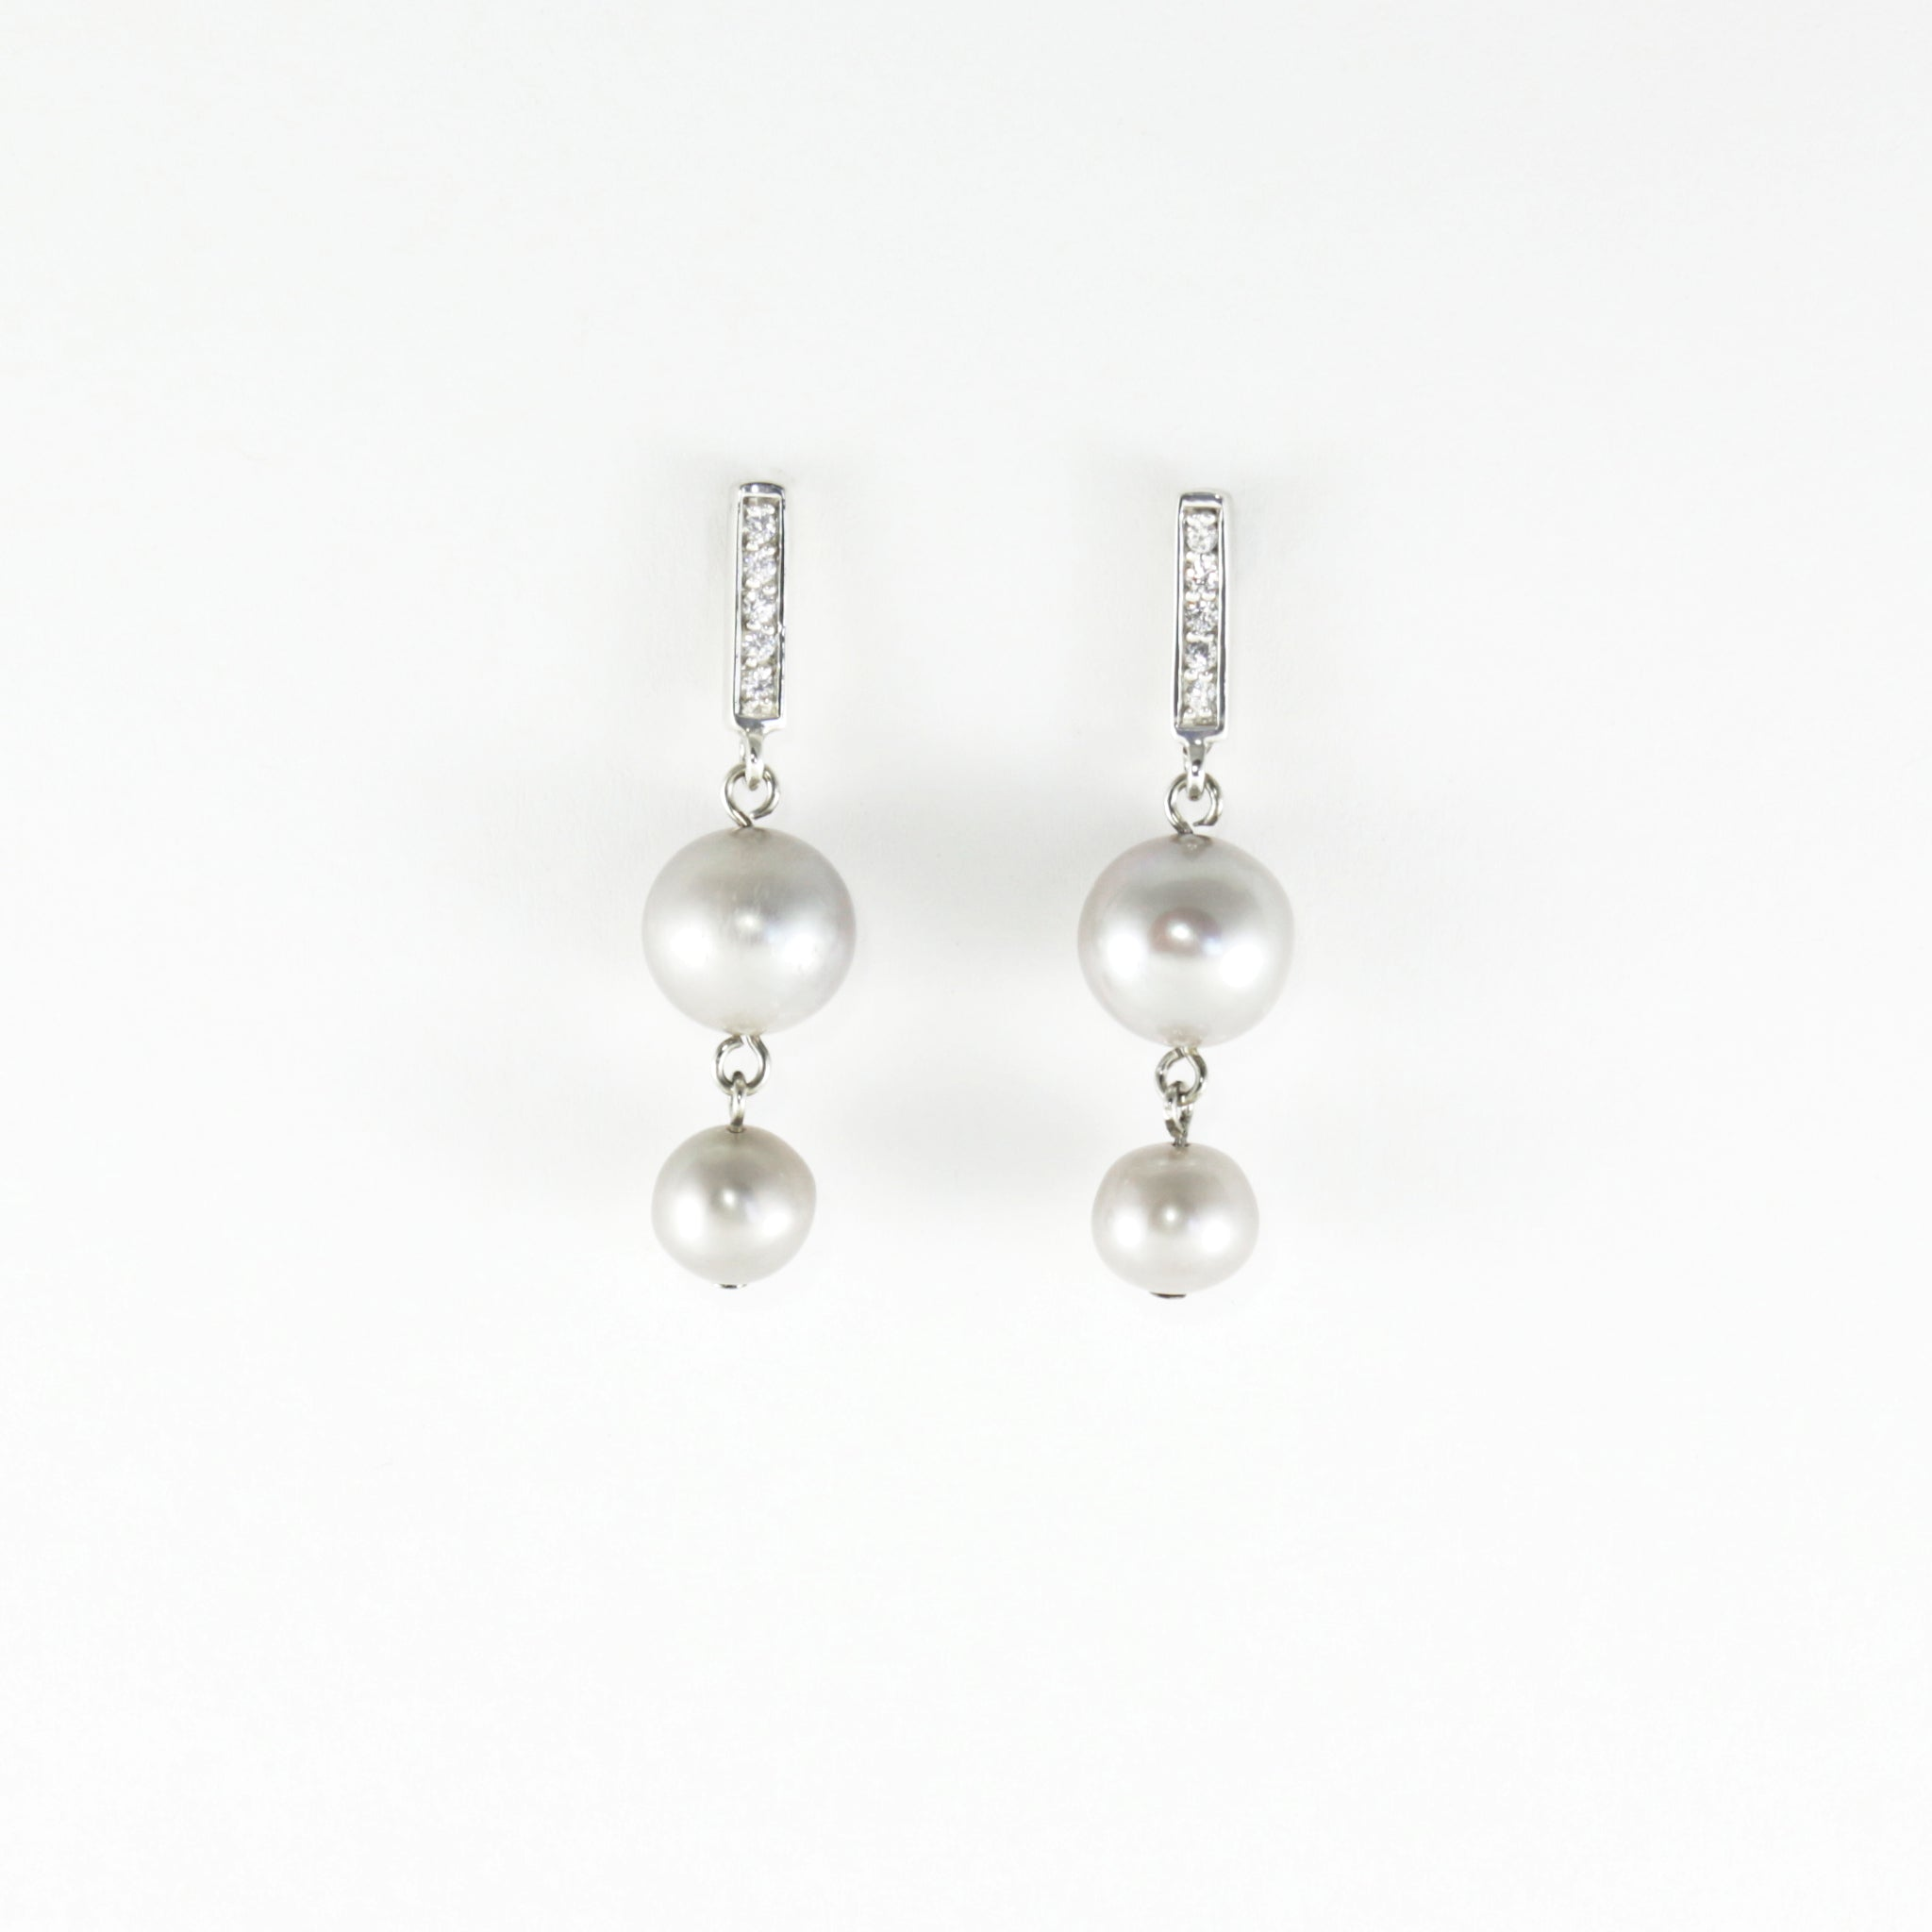 Pearl Plaza Earrings in Grey Pearl